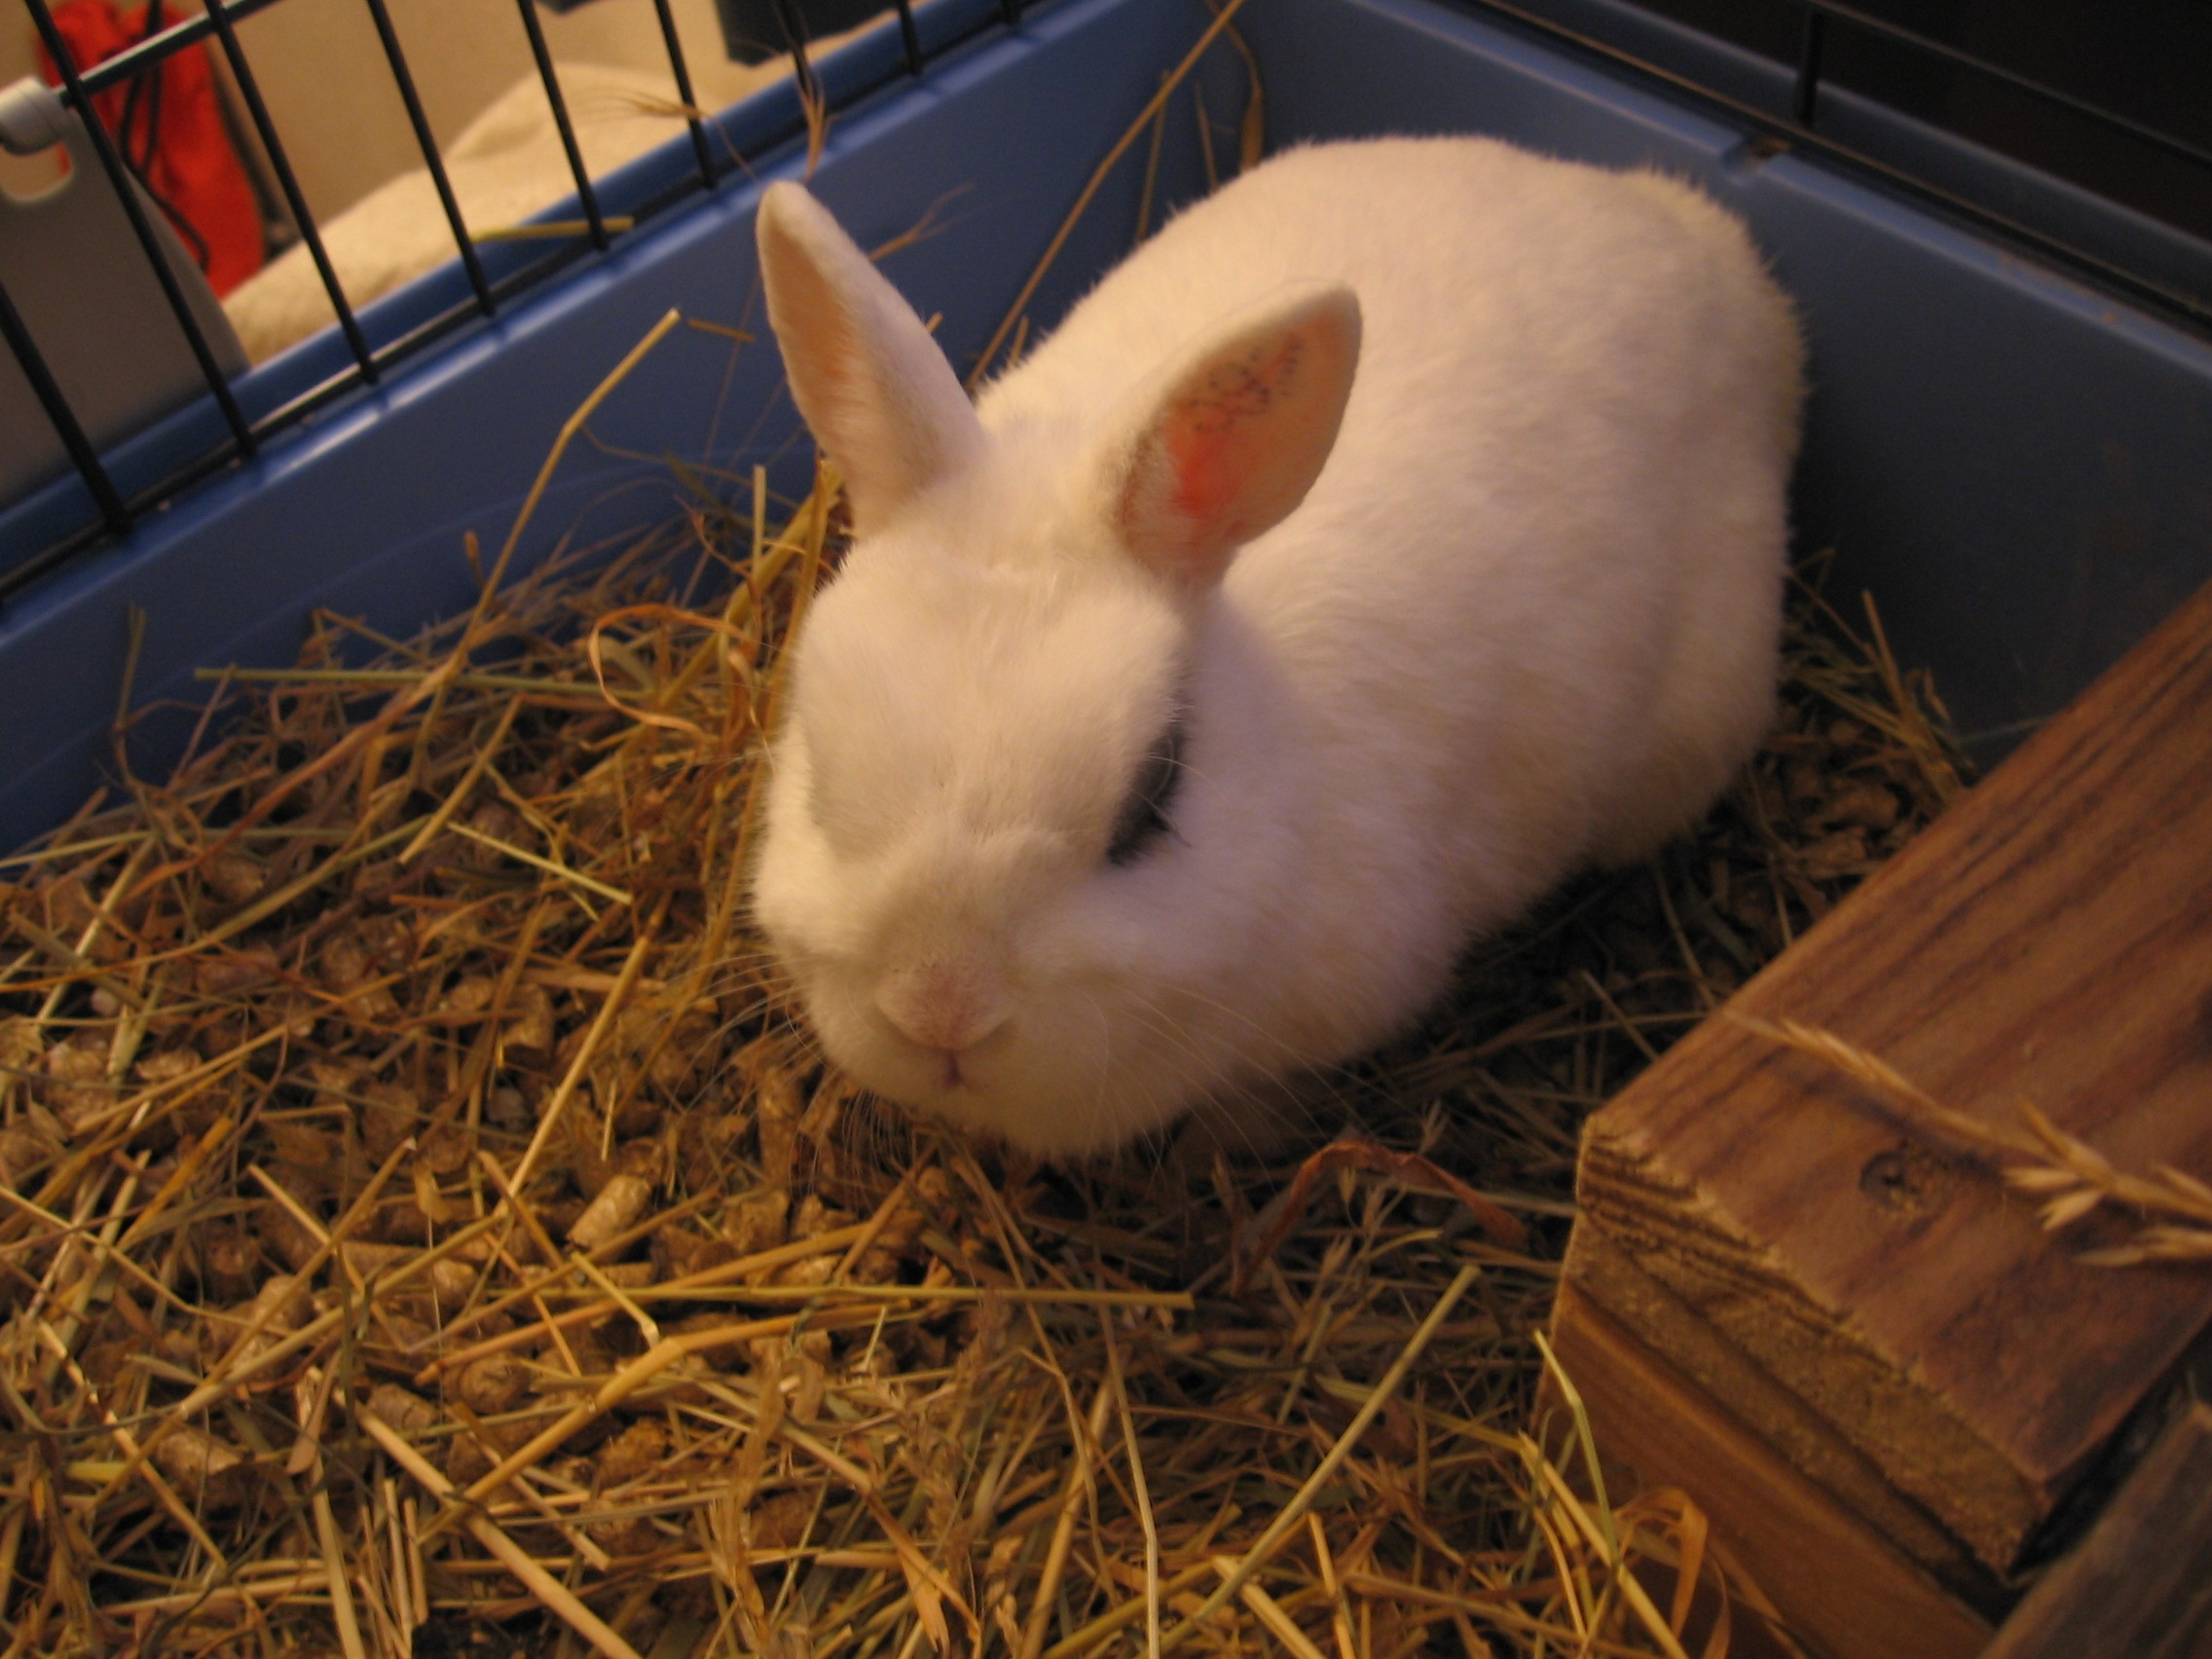 A Netherland dwarf rabbit called Magda